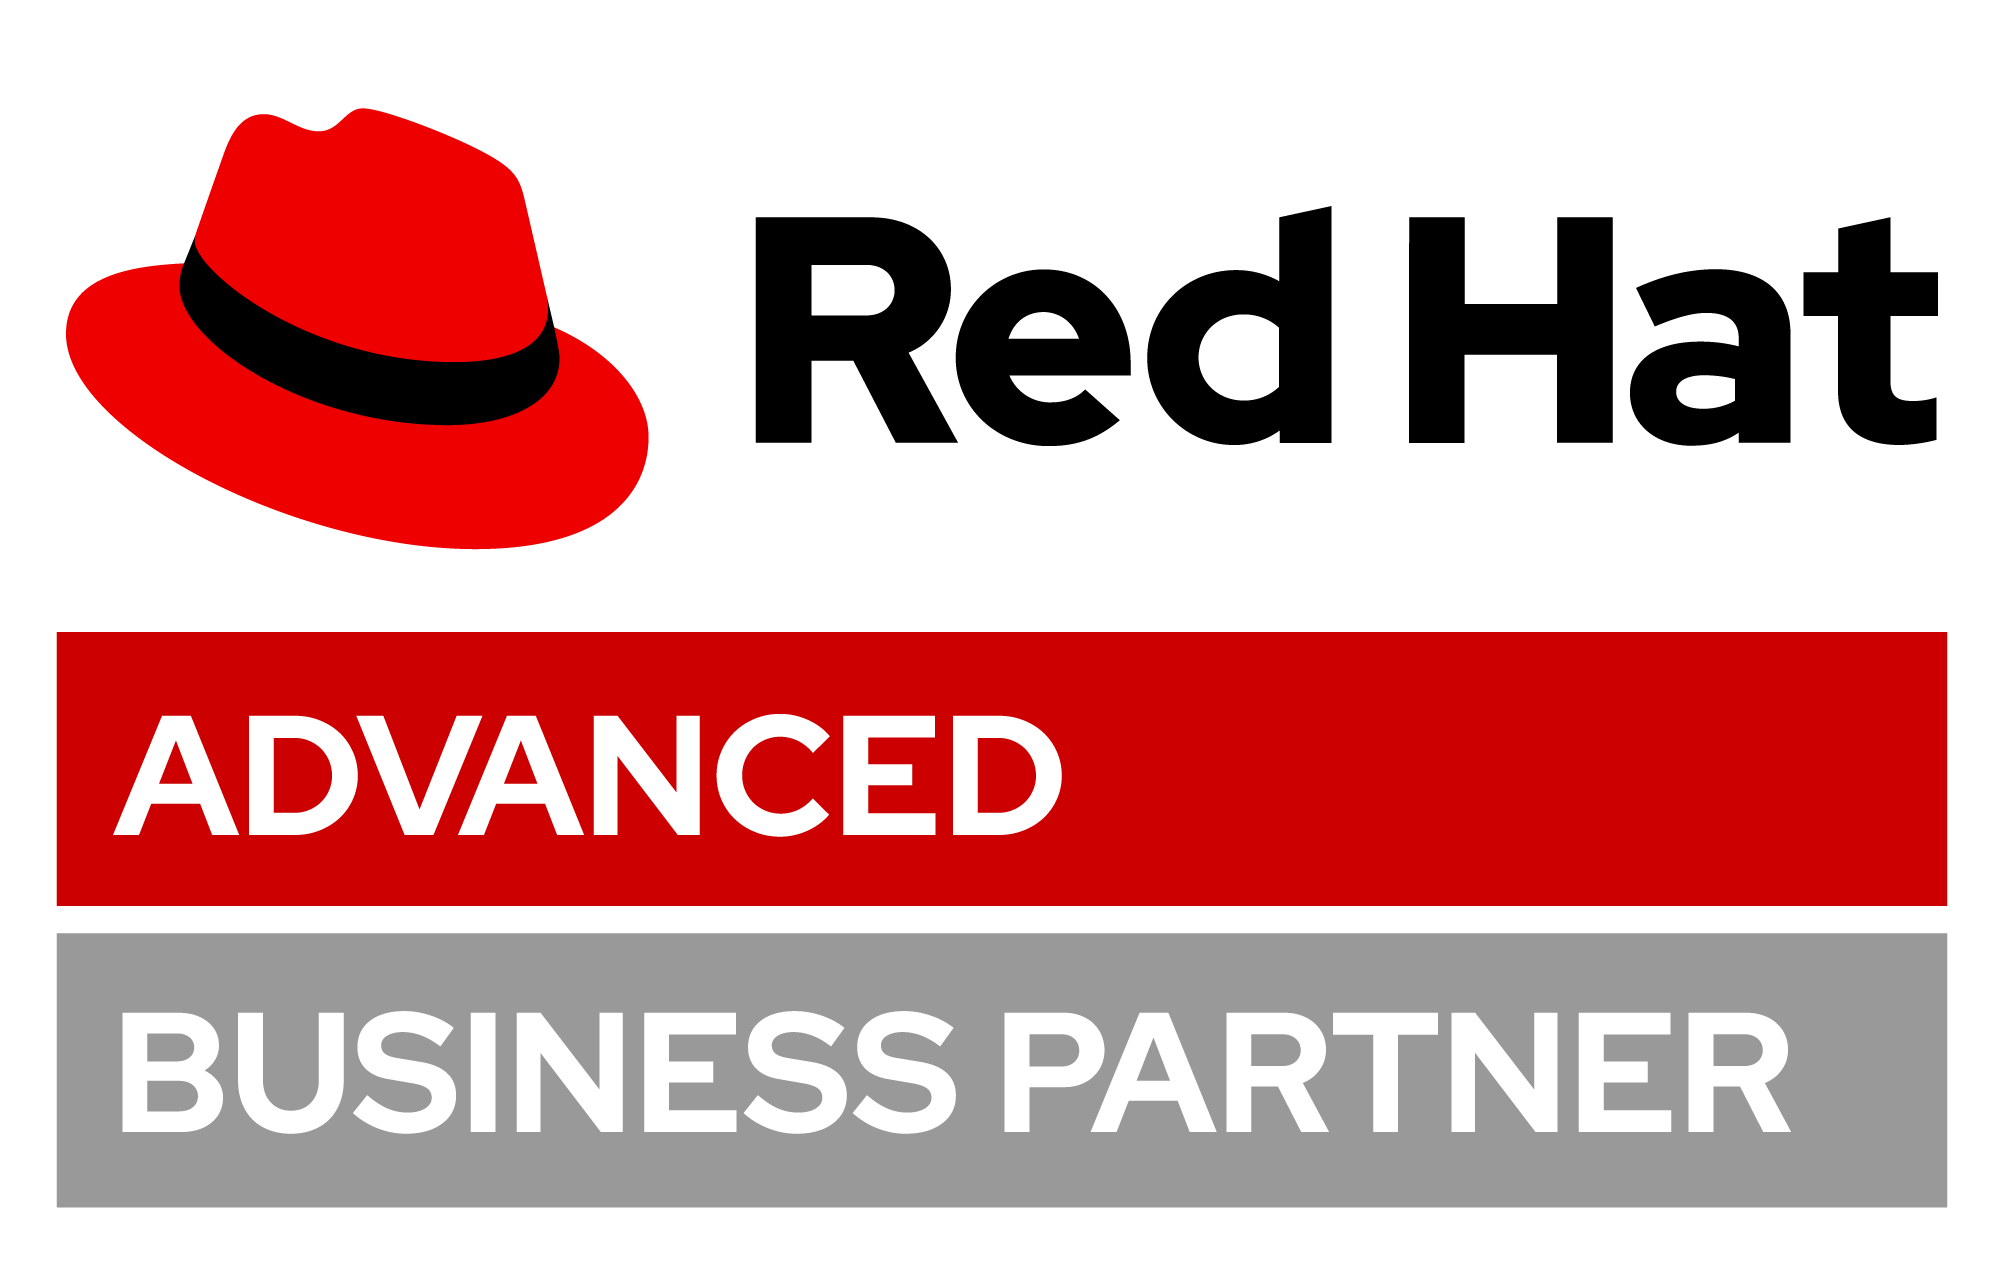 red-hat-new-logo-advanced-business-partner